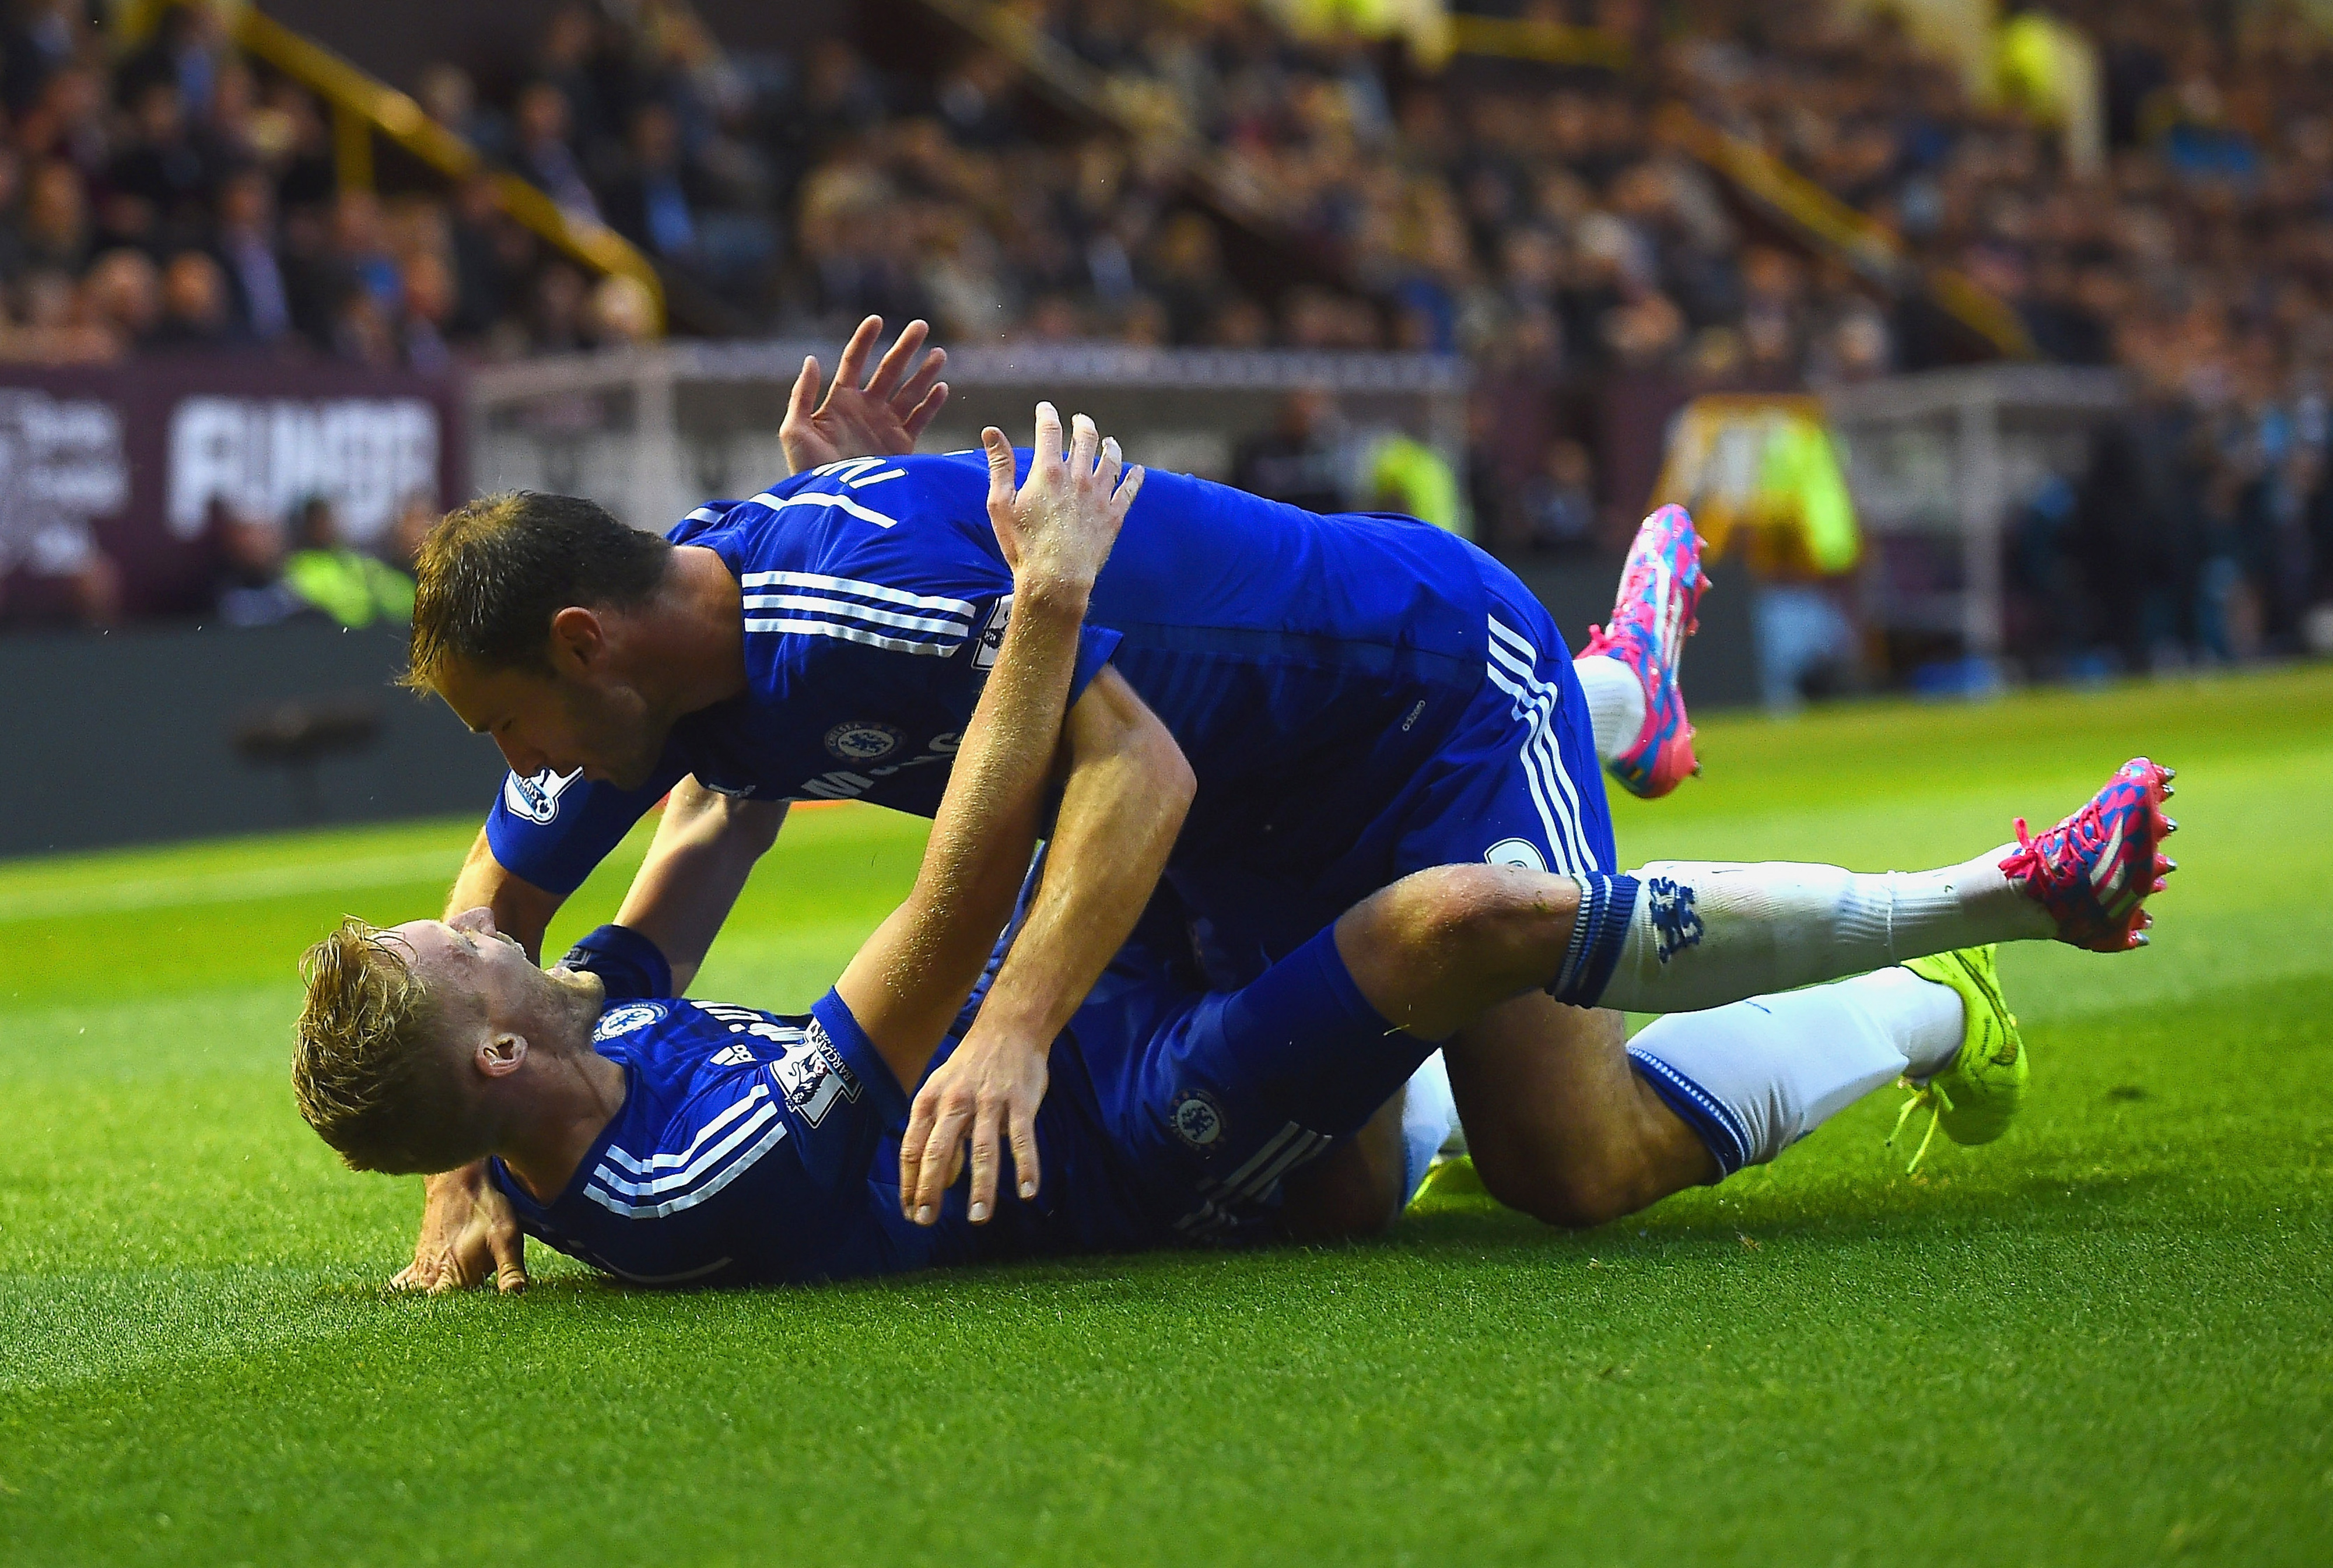 Burnley vs. Chelsea: Final score 1-3, spectacular display from the Blues